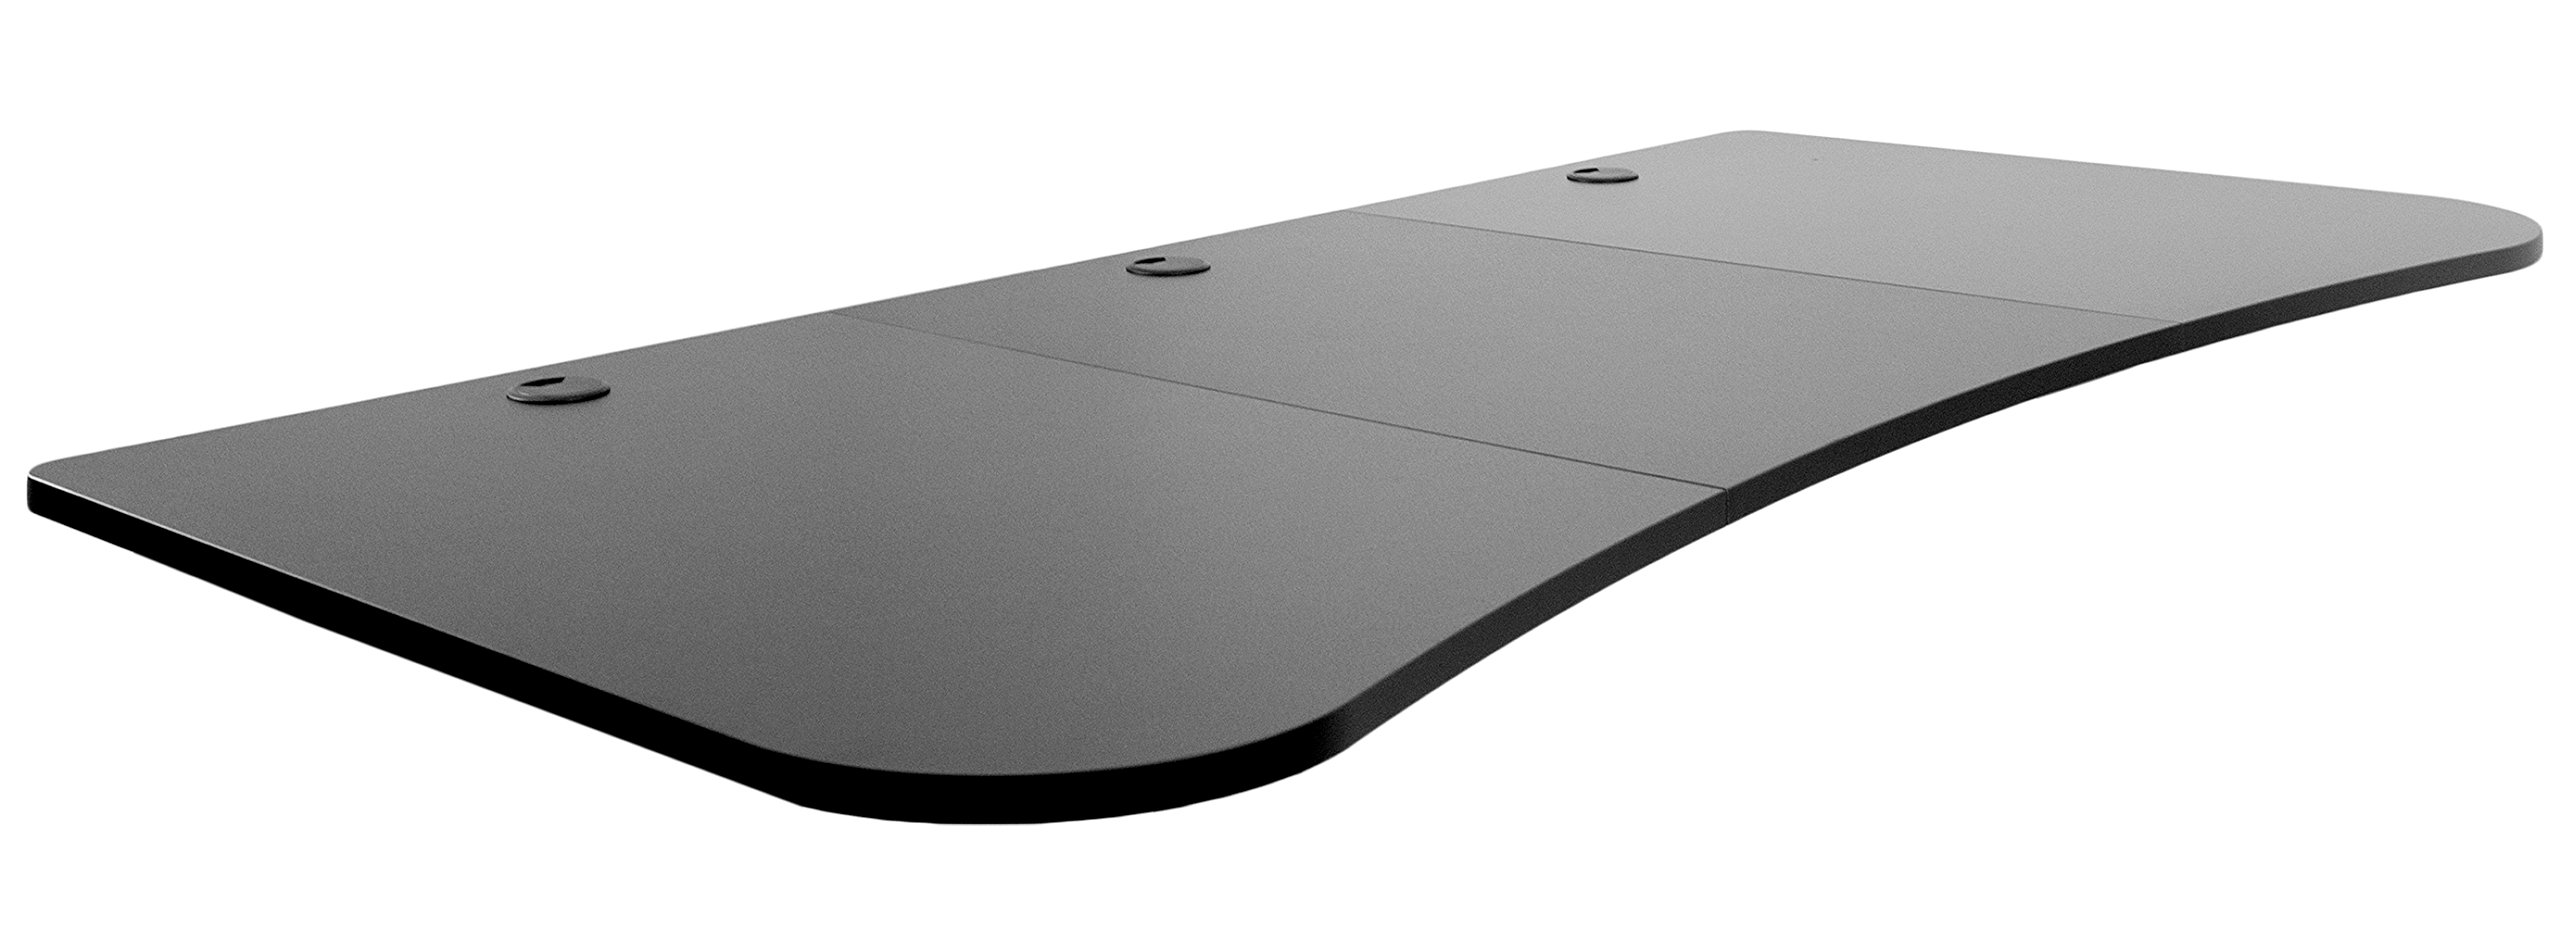 VIVO Black 63 x 32 inch Universal Table Top for Standard and Sit to Stand Height Adjustable Home and Office Desk Frames | 3 Section Desktop (DESK-TOP1B)